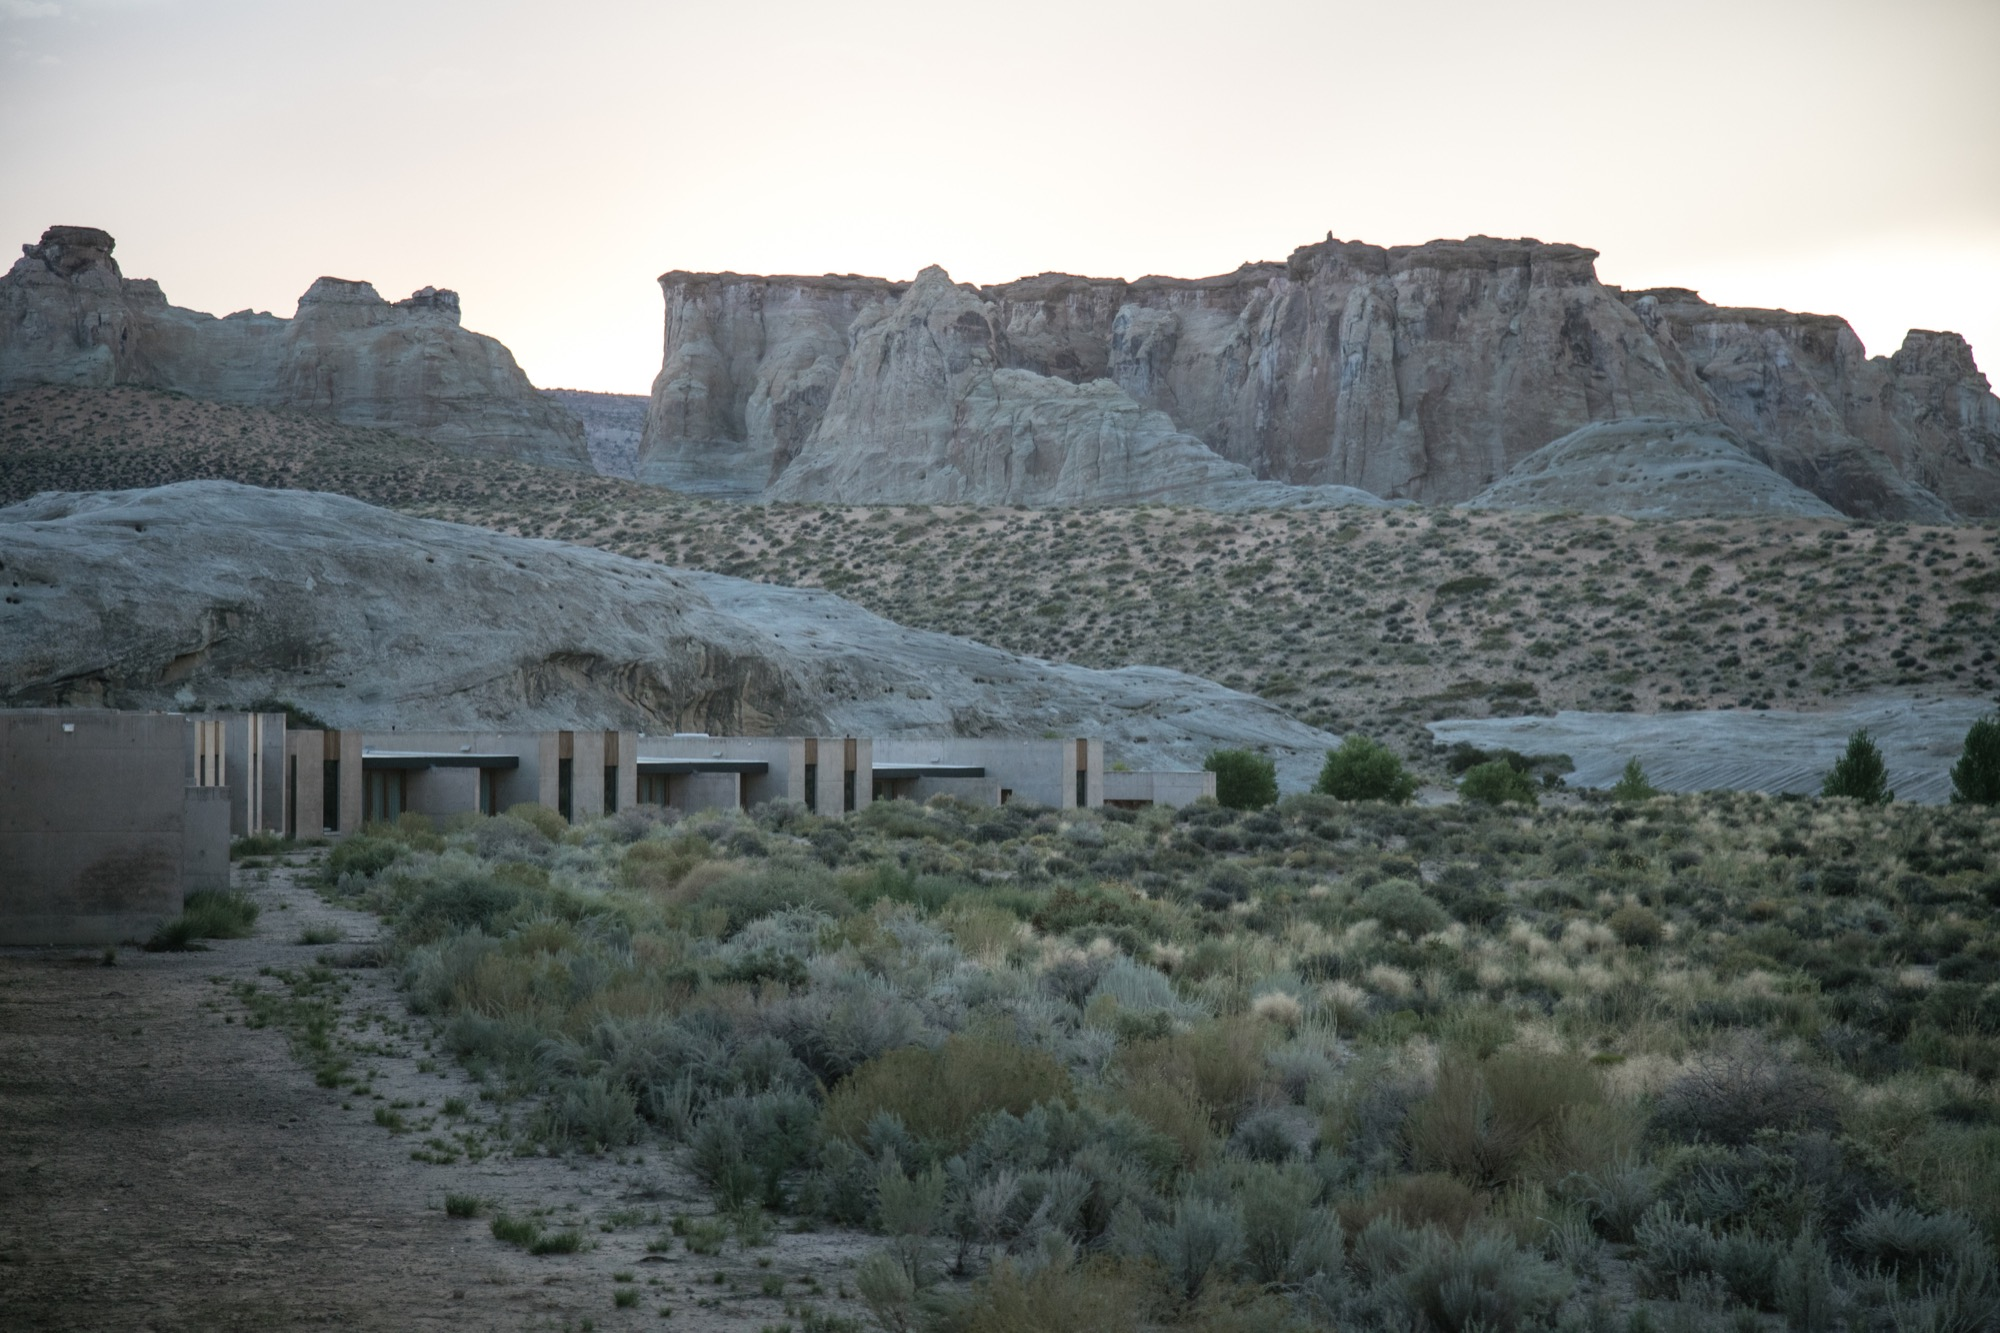 The Amangiri sits on 600 mostly wild acres / Photo by Jake Weisz